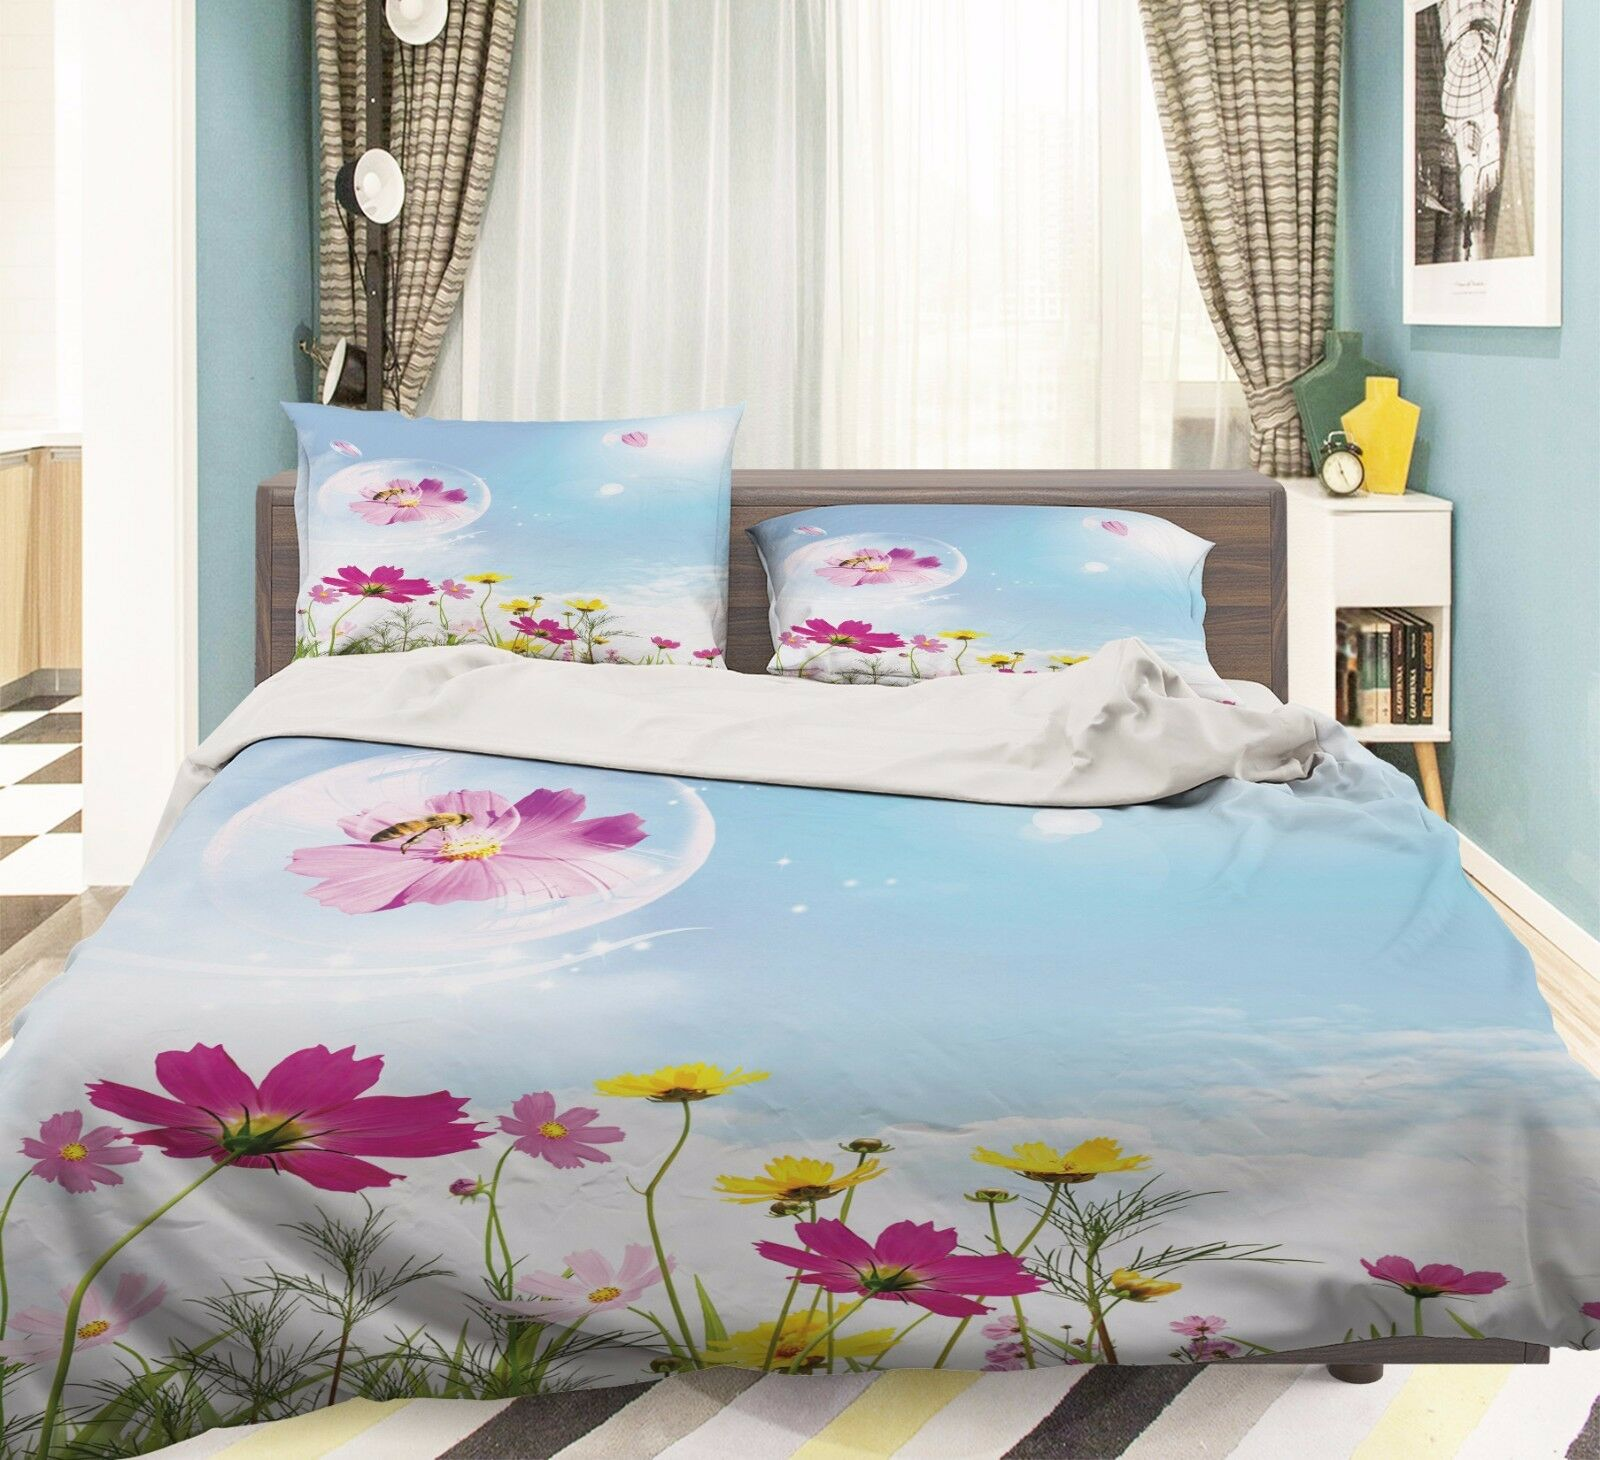 3D Flowers Sky 886 Bed Pillowcases Quilt Duvet Cover Set Single Queen UK Carly